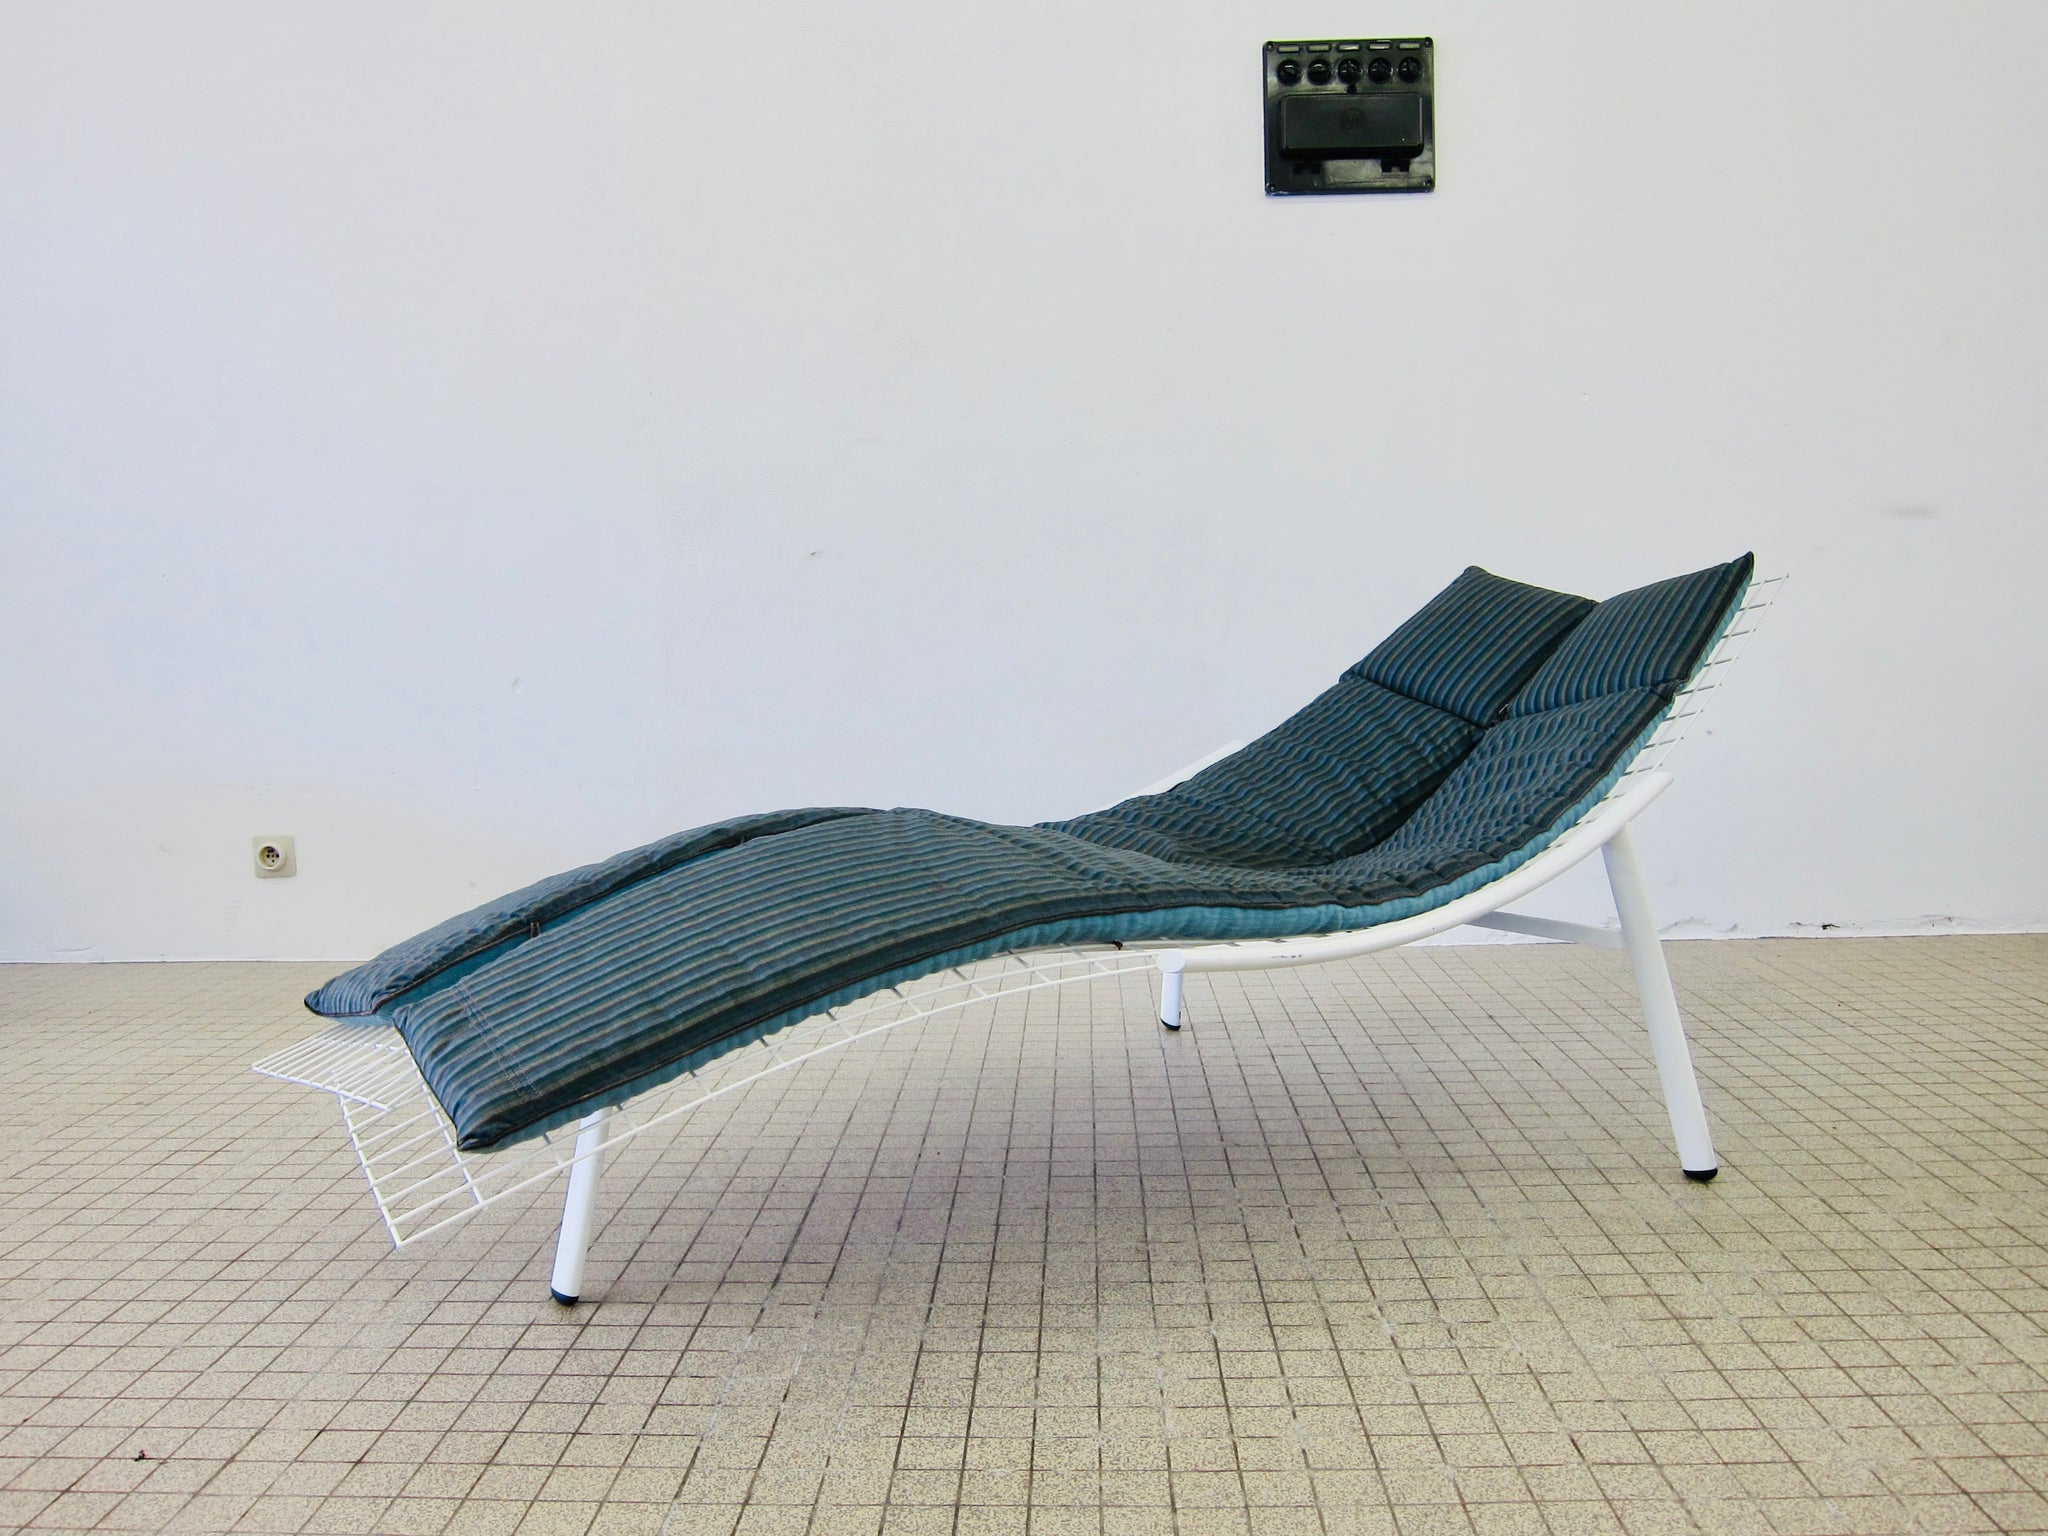 Saporiti 'Swing' chaise longue by Giovanni Offredi 1970s vintage design